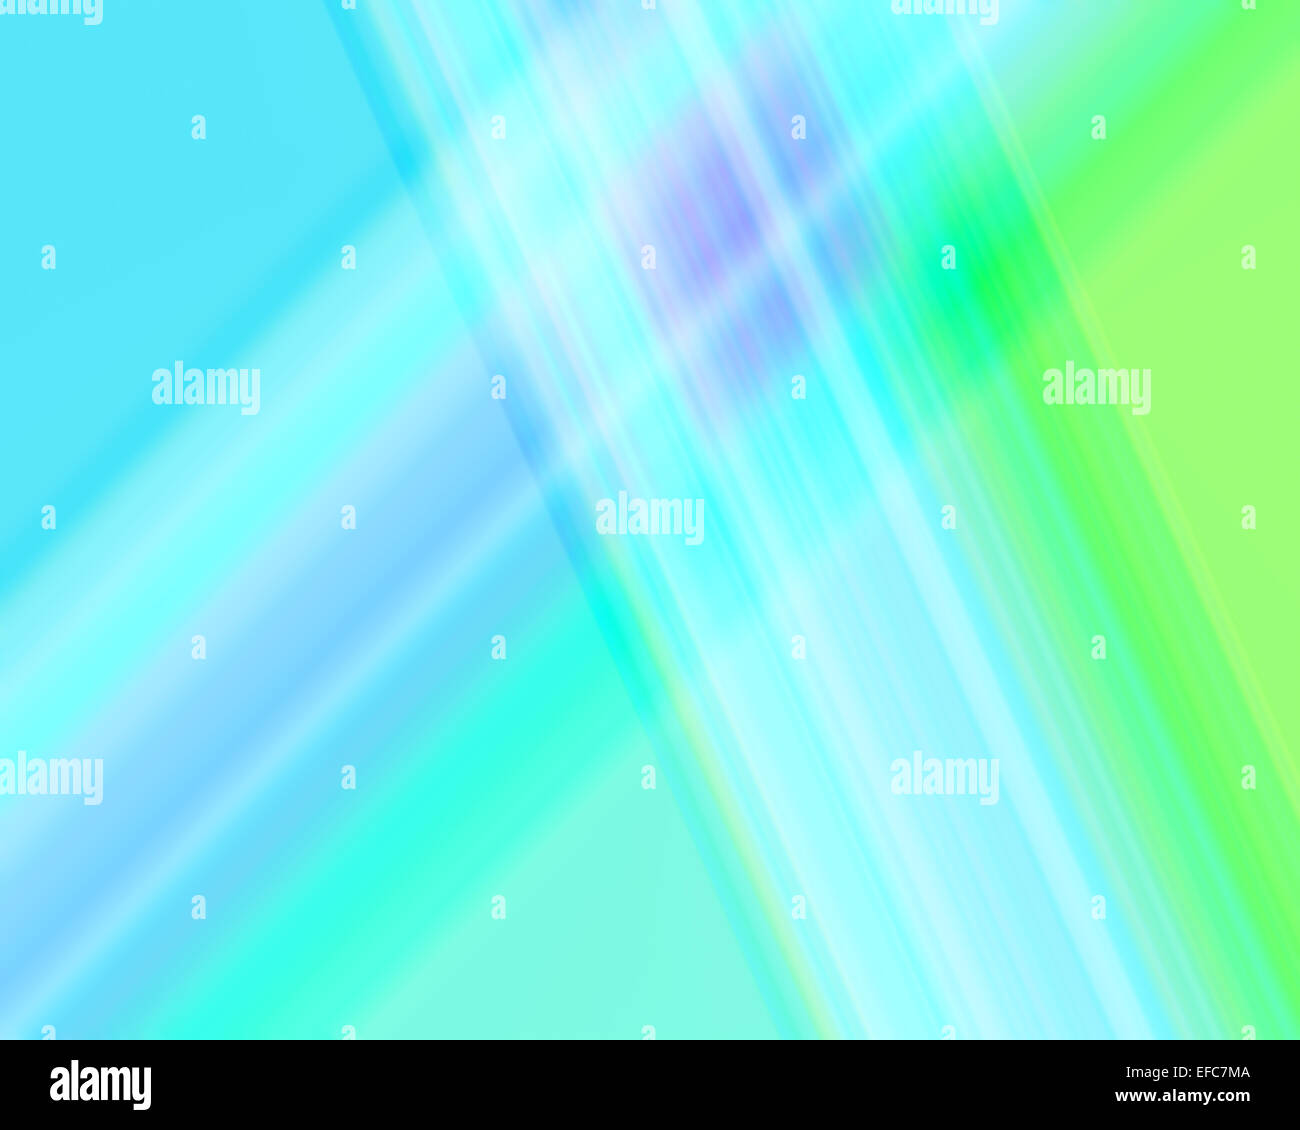 A design intended for use as a background, showing a subtle variety  of colors with crossing blurred lines. - Stock Image